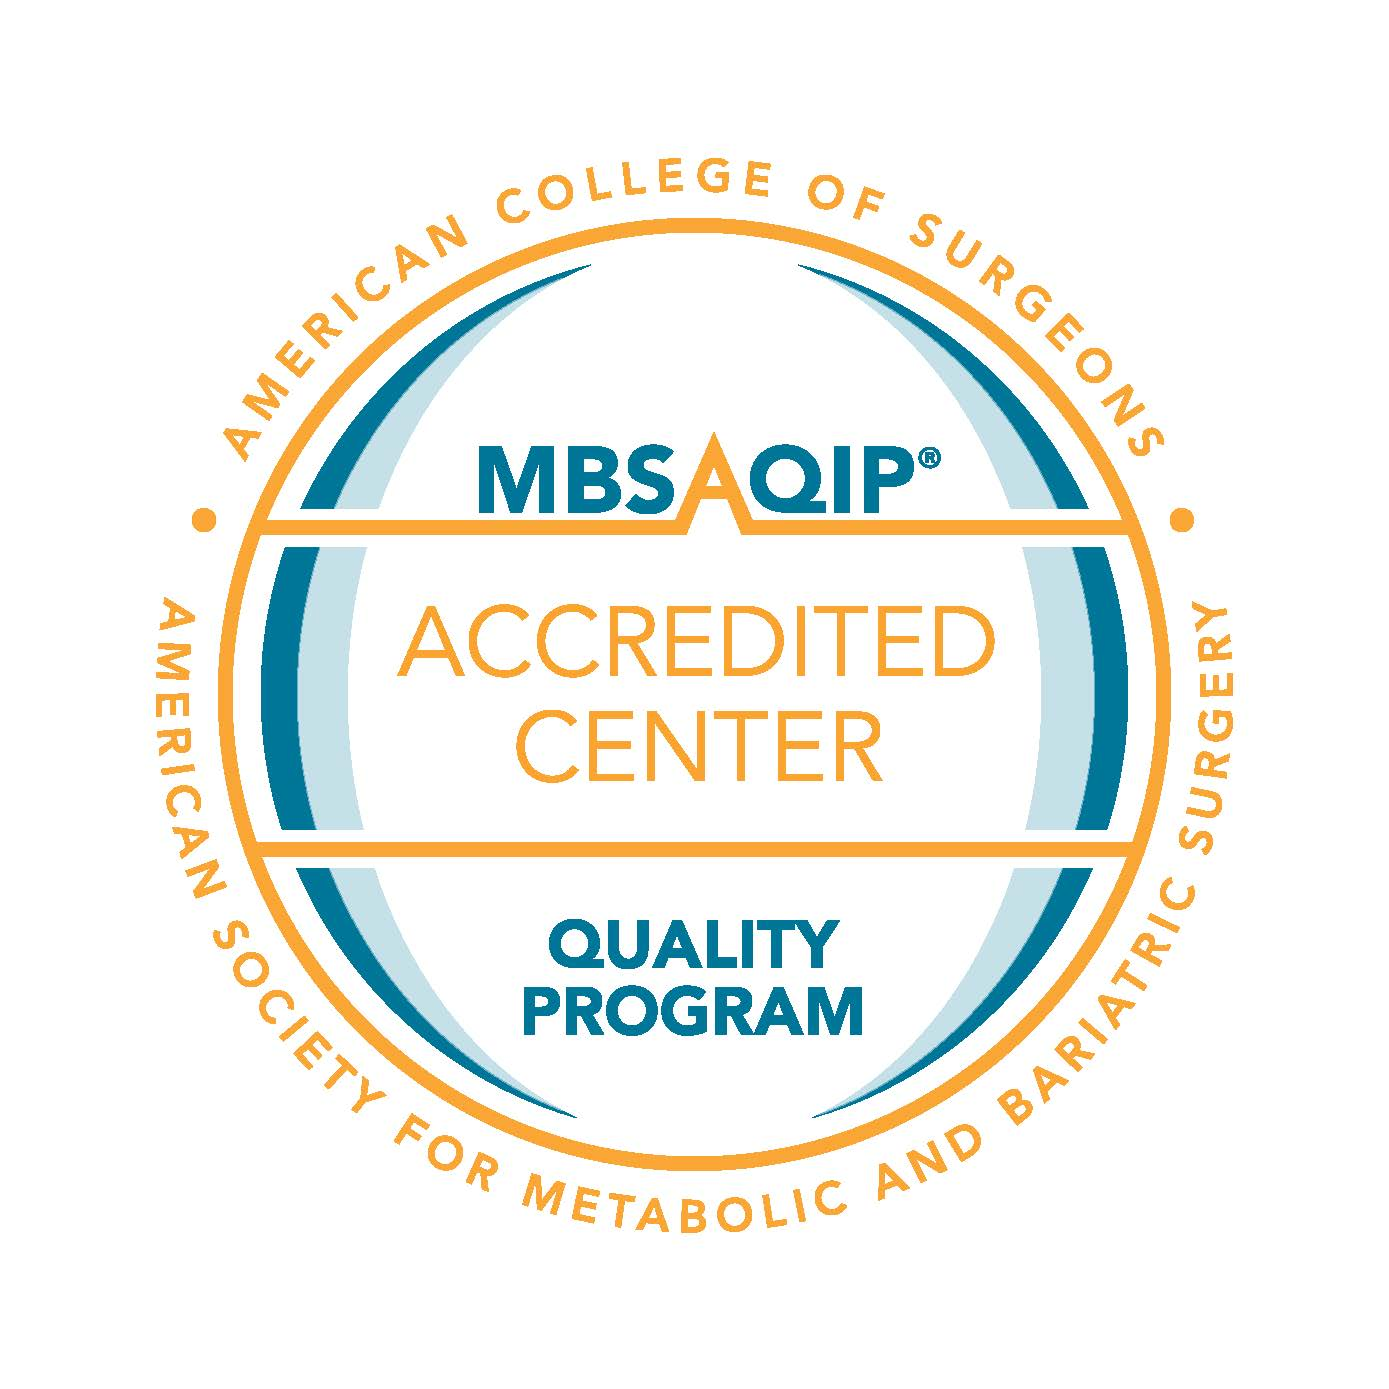 bariatric accreditation seal